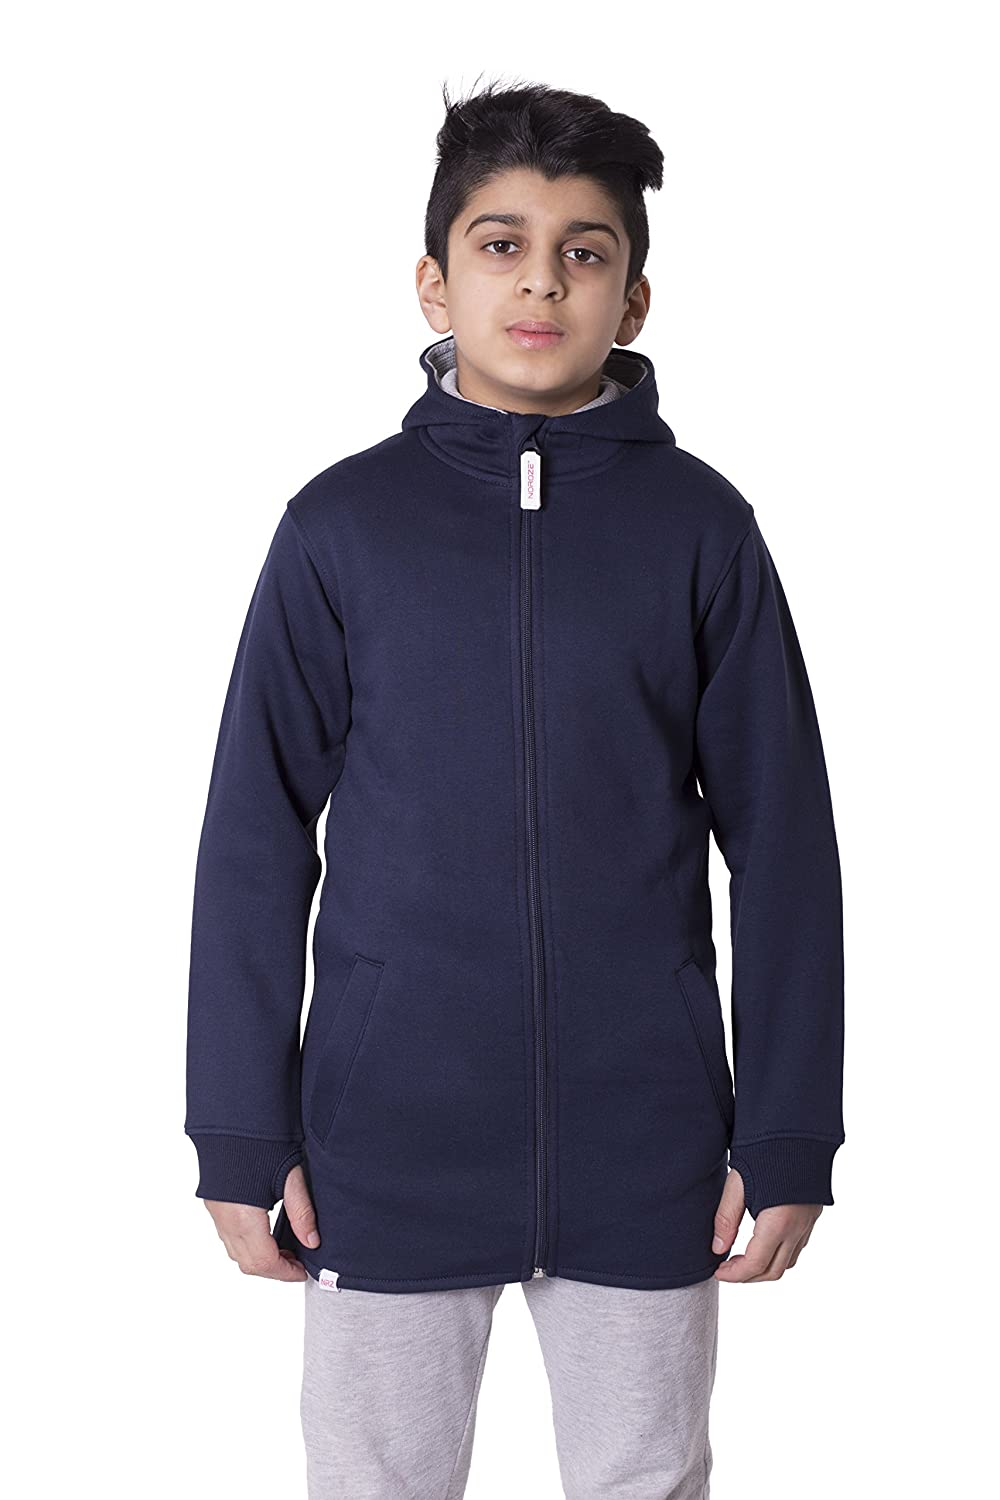 Noroze Girls Boys Unisex Plain High Low Long Hoodie